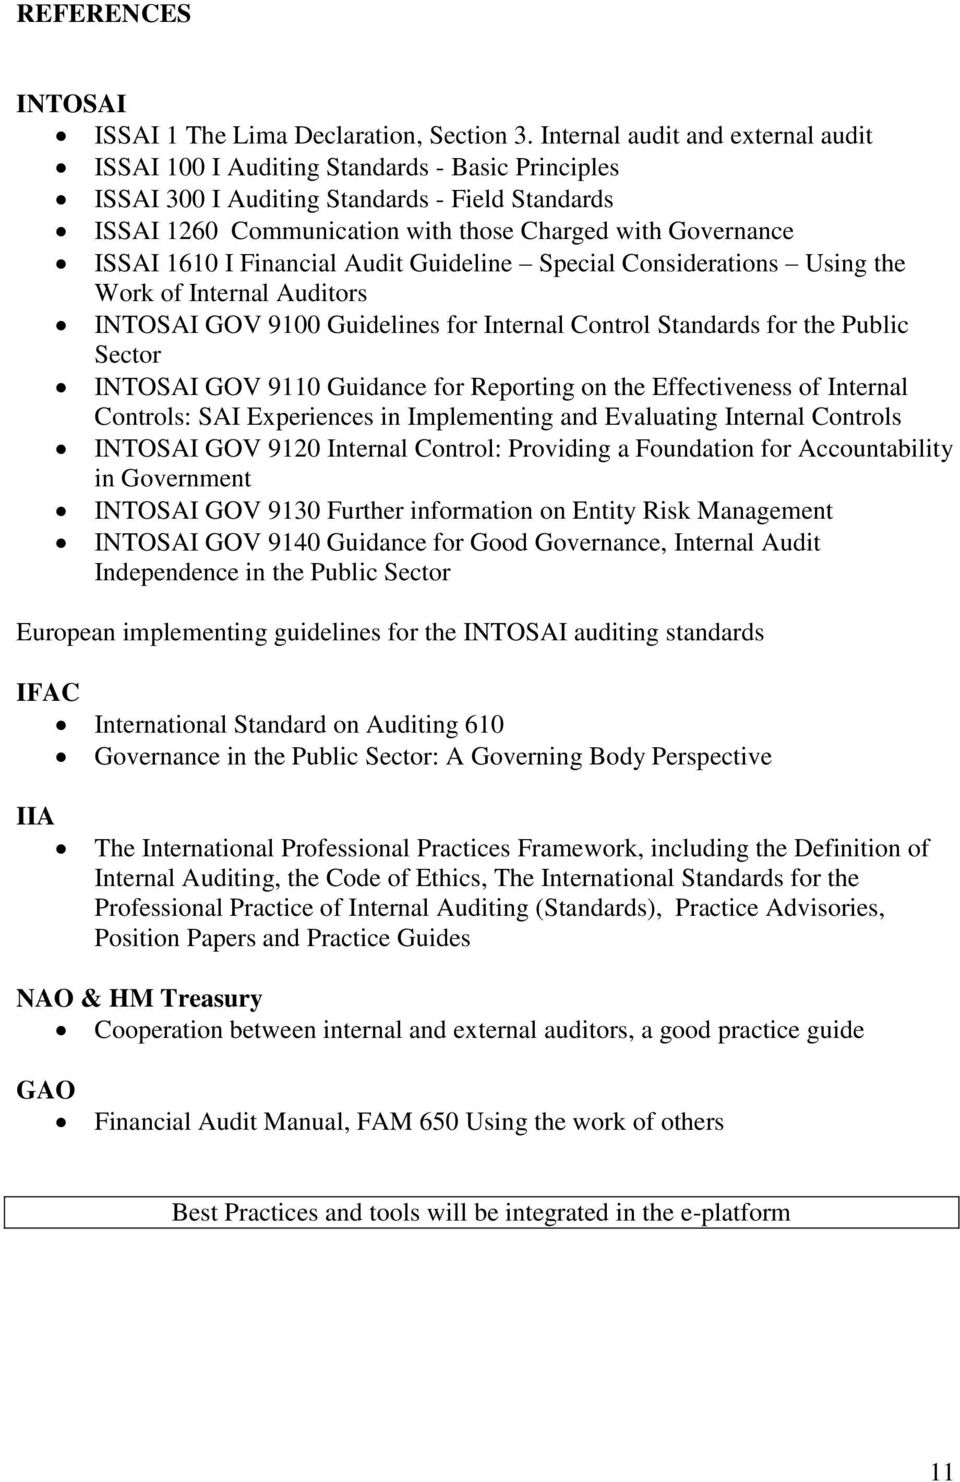 1610 I Financial Audit Guideline Special Considerations Using the Work of Internal Auditors INTOSAI GOV 9100 Guidelines for Internal Control Standards for the Public Sector INTOSAI GOV 9110 Guidance